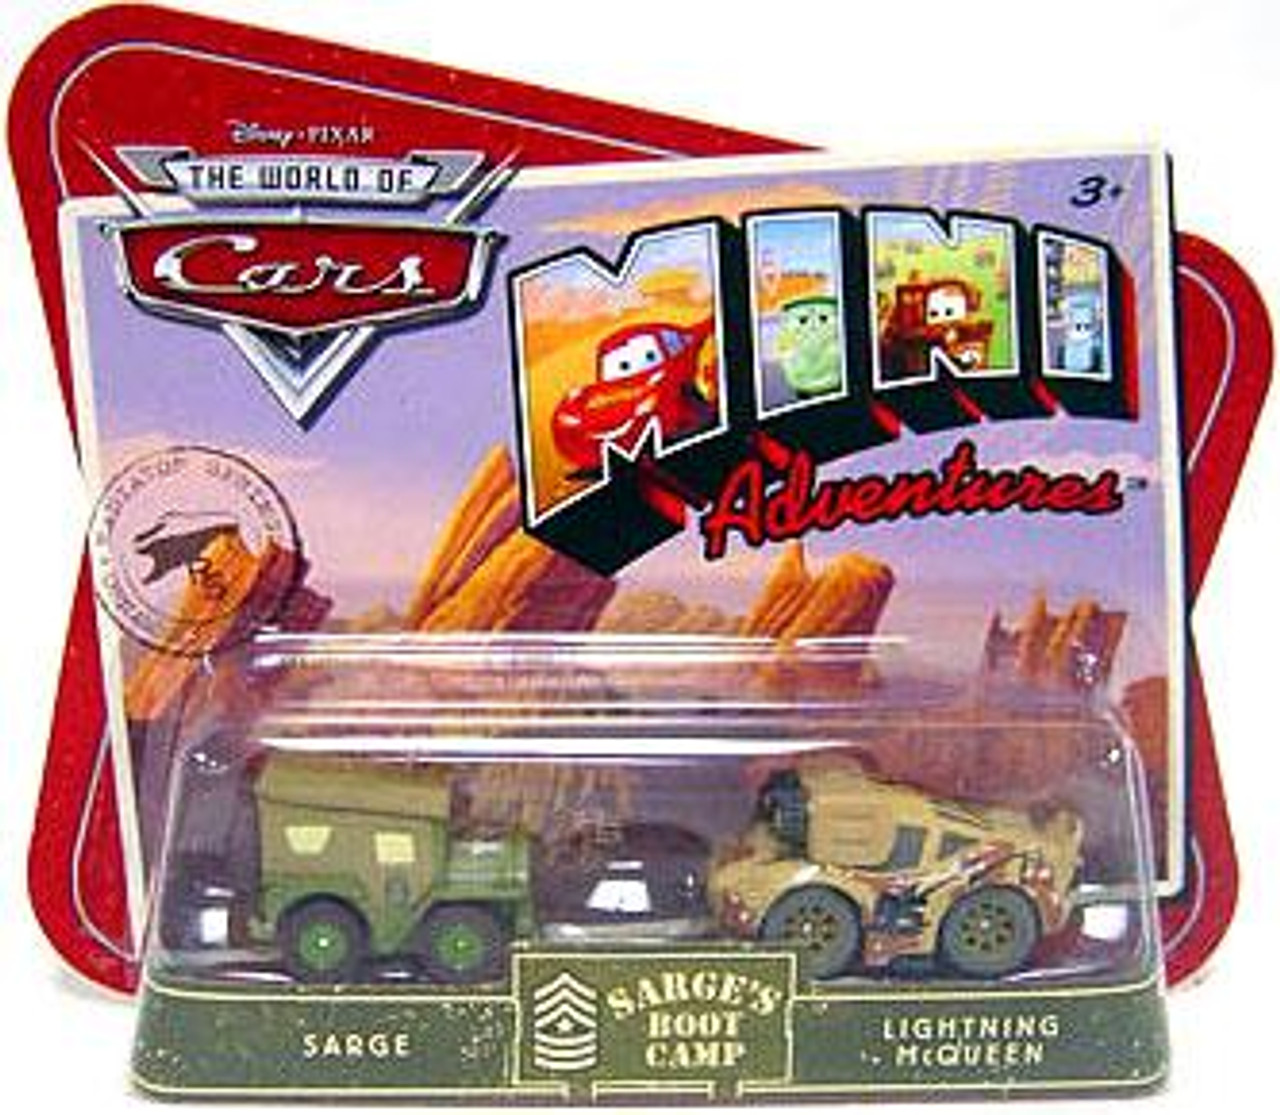 Disney Cars The World of Cars Mini Adventures Sarge & McQueen Plastic Car 2-Pack [Sarge's Boot Camp]